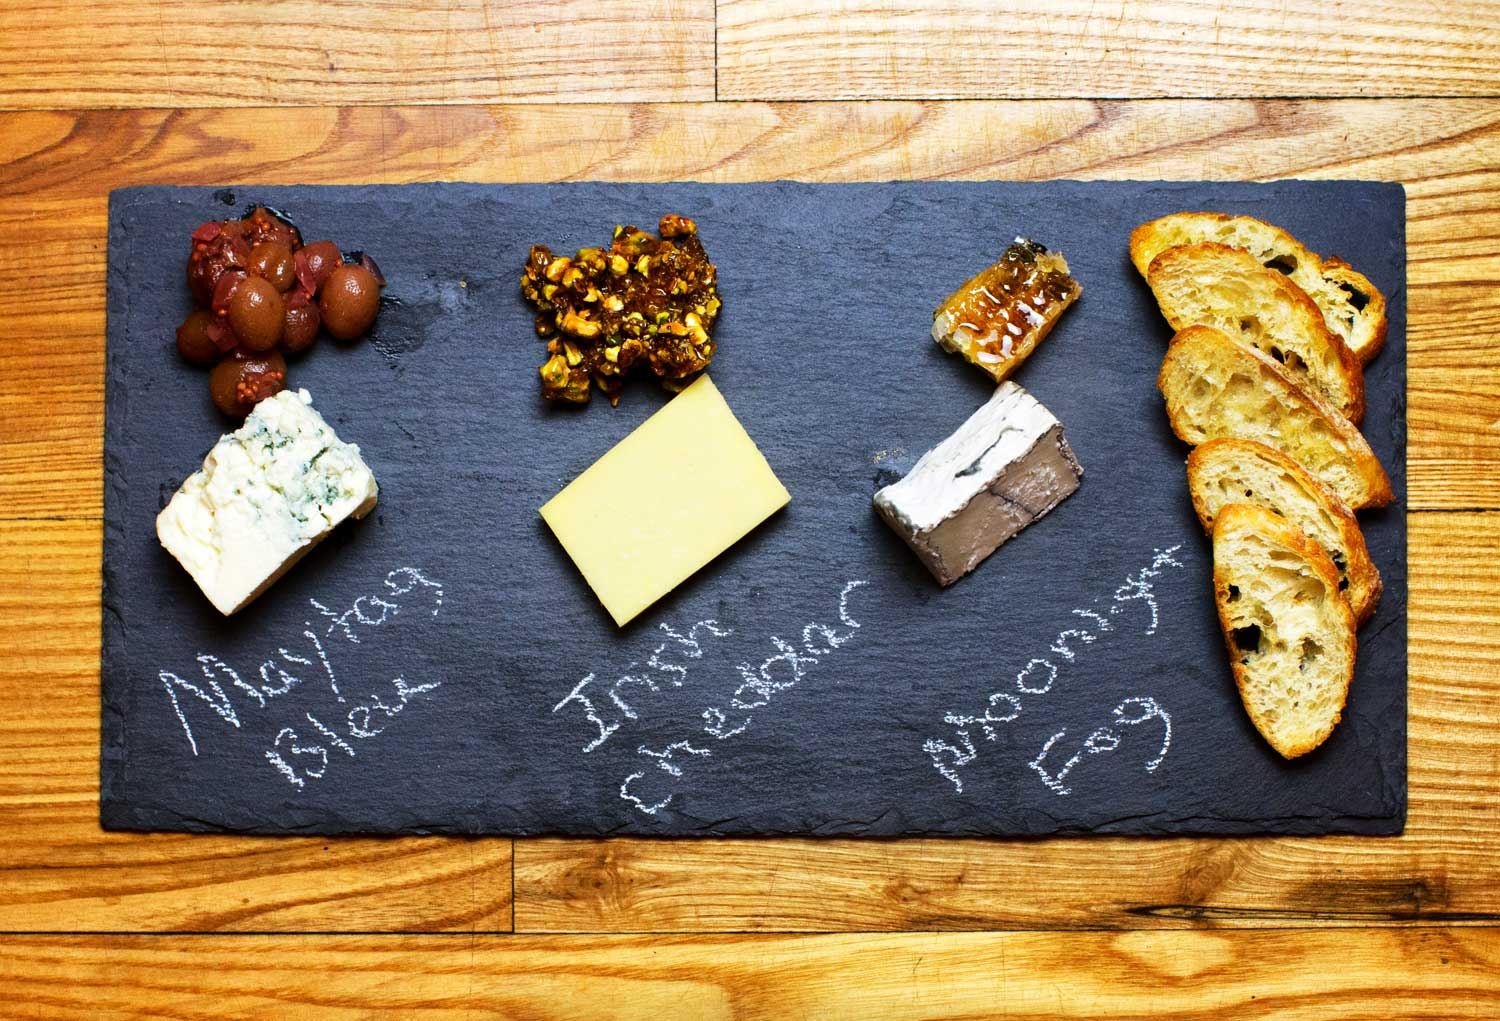 Cheese Board prepared by Mount Hill Tavern